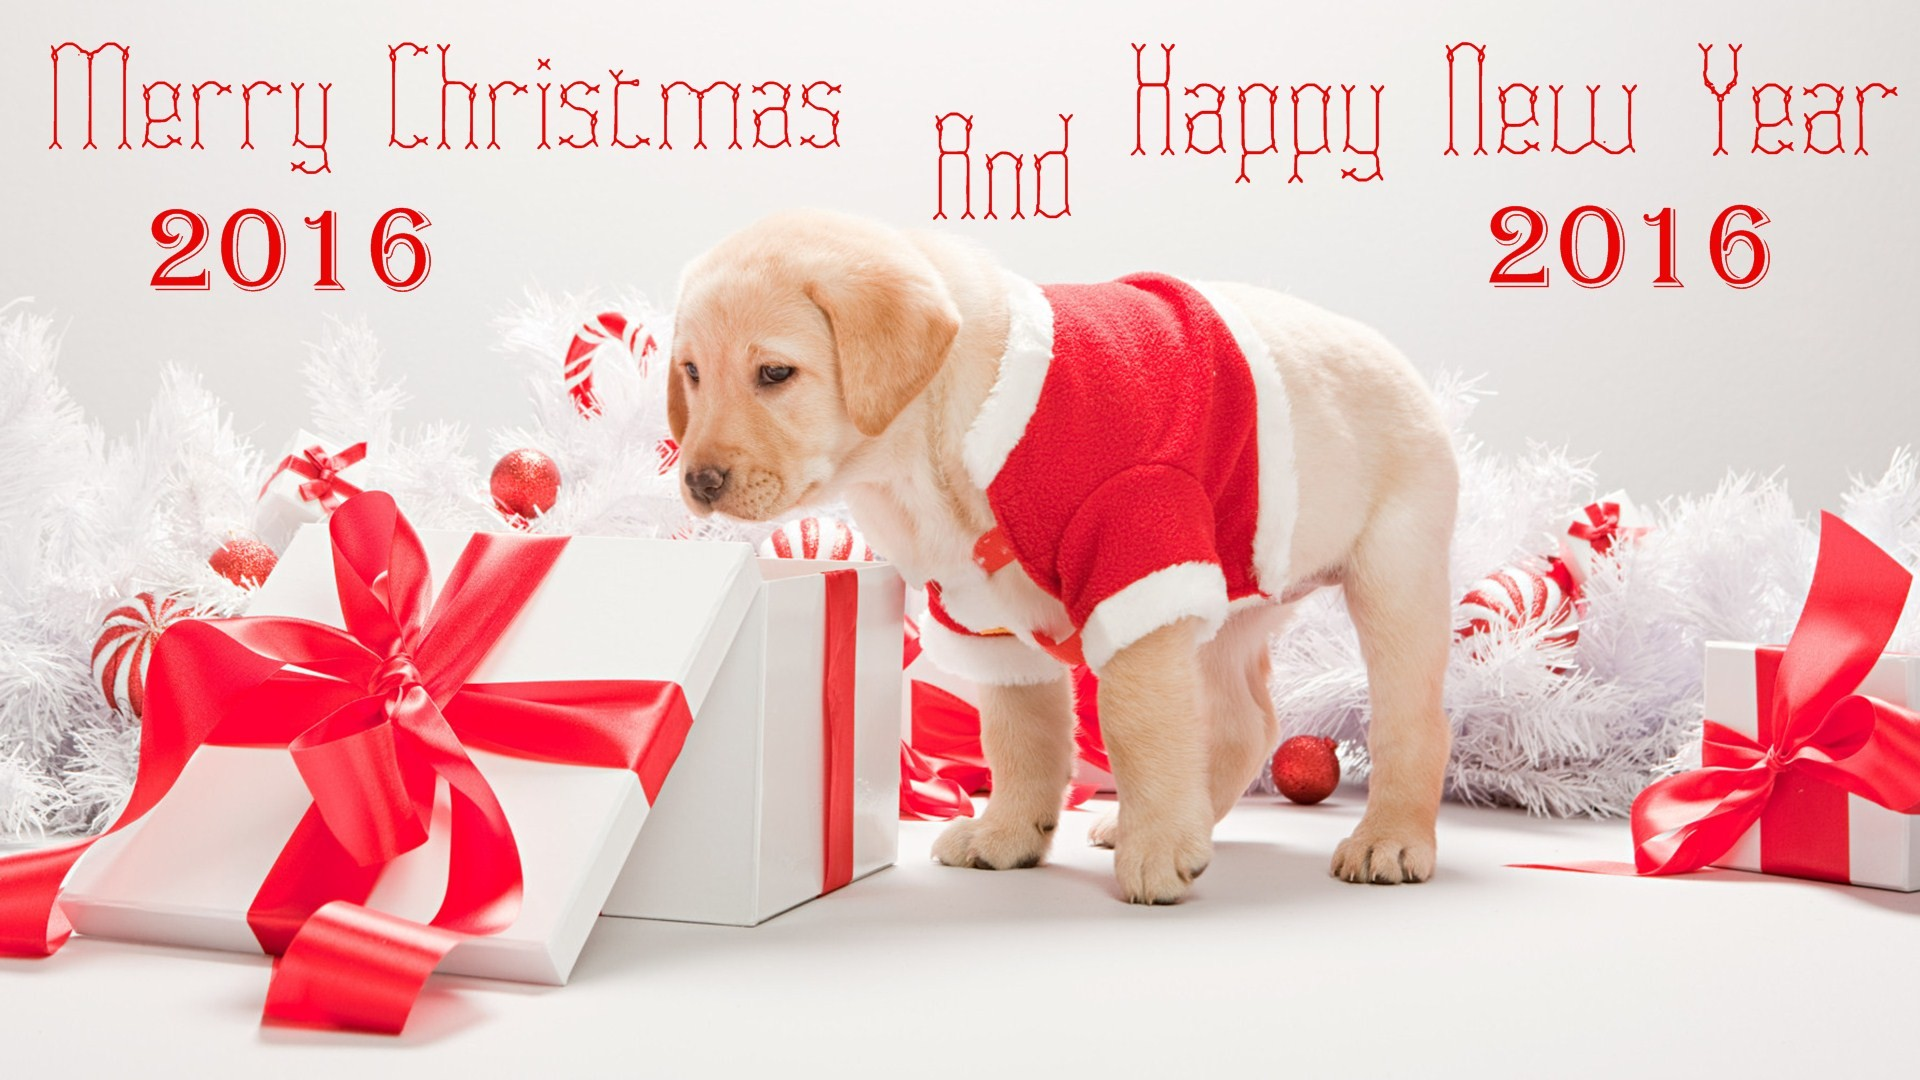 Merry Christmas And Happy New Year 2016 Labrador Puppy Looking Gifts